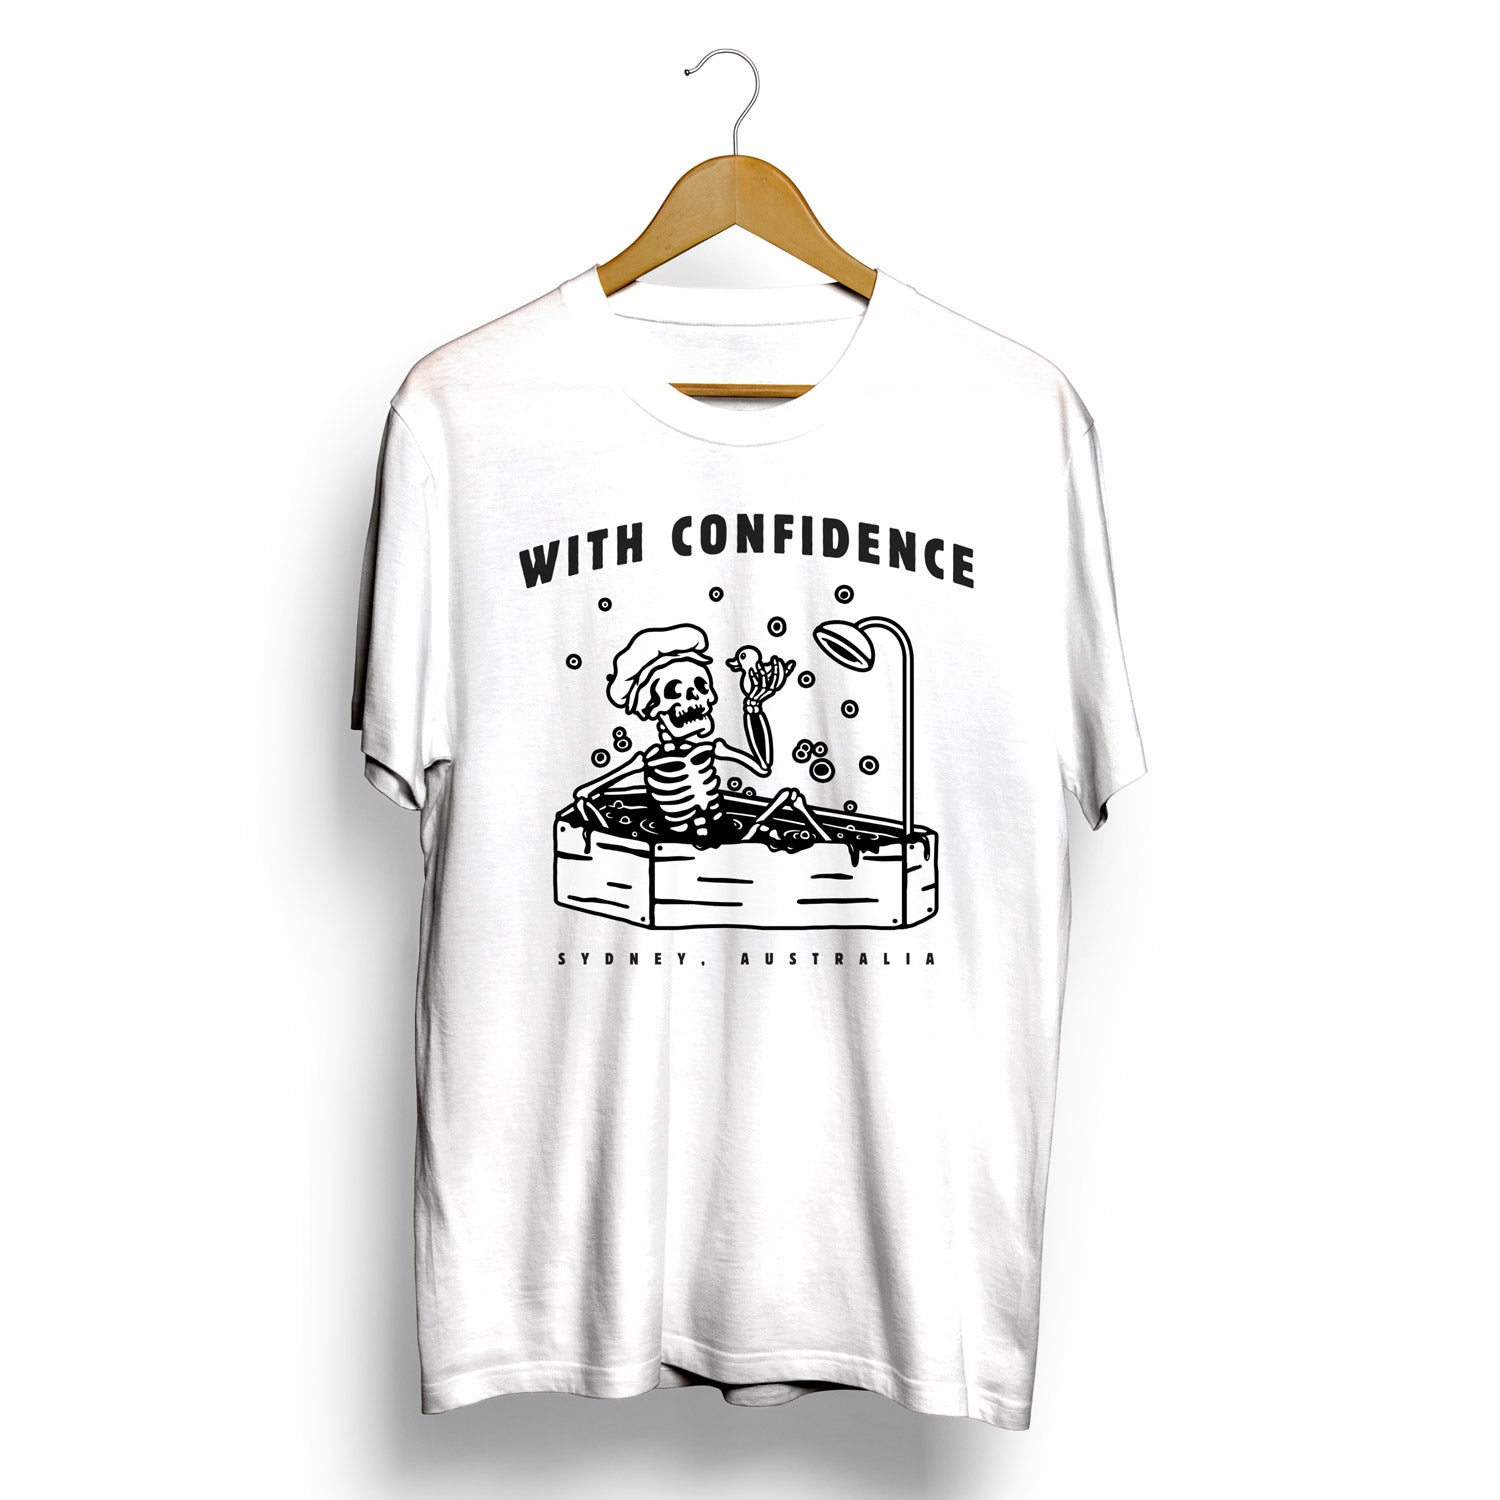 WITH CONFIDENCE T-SHIRT